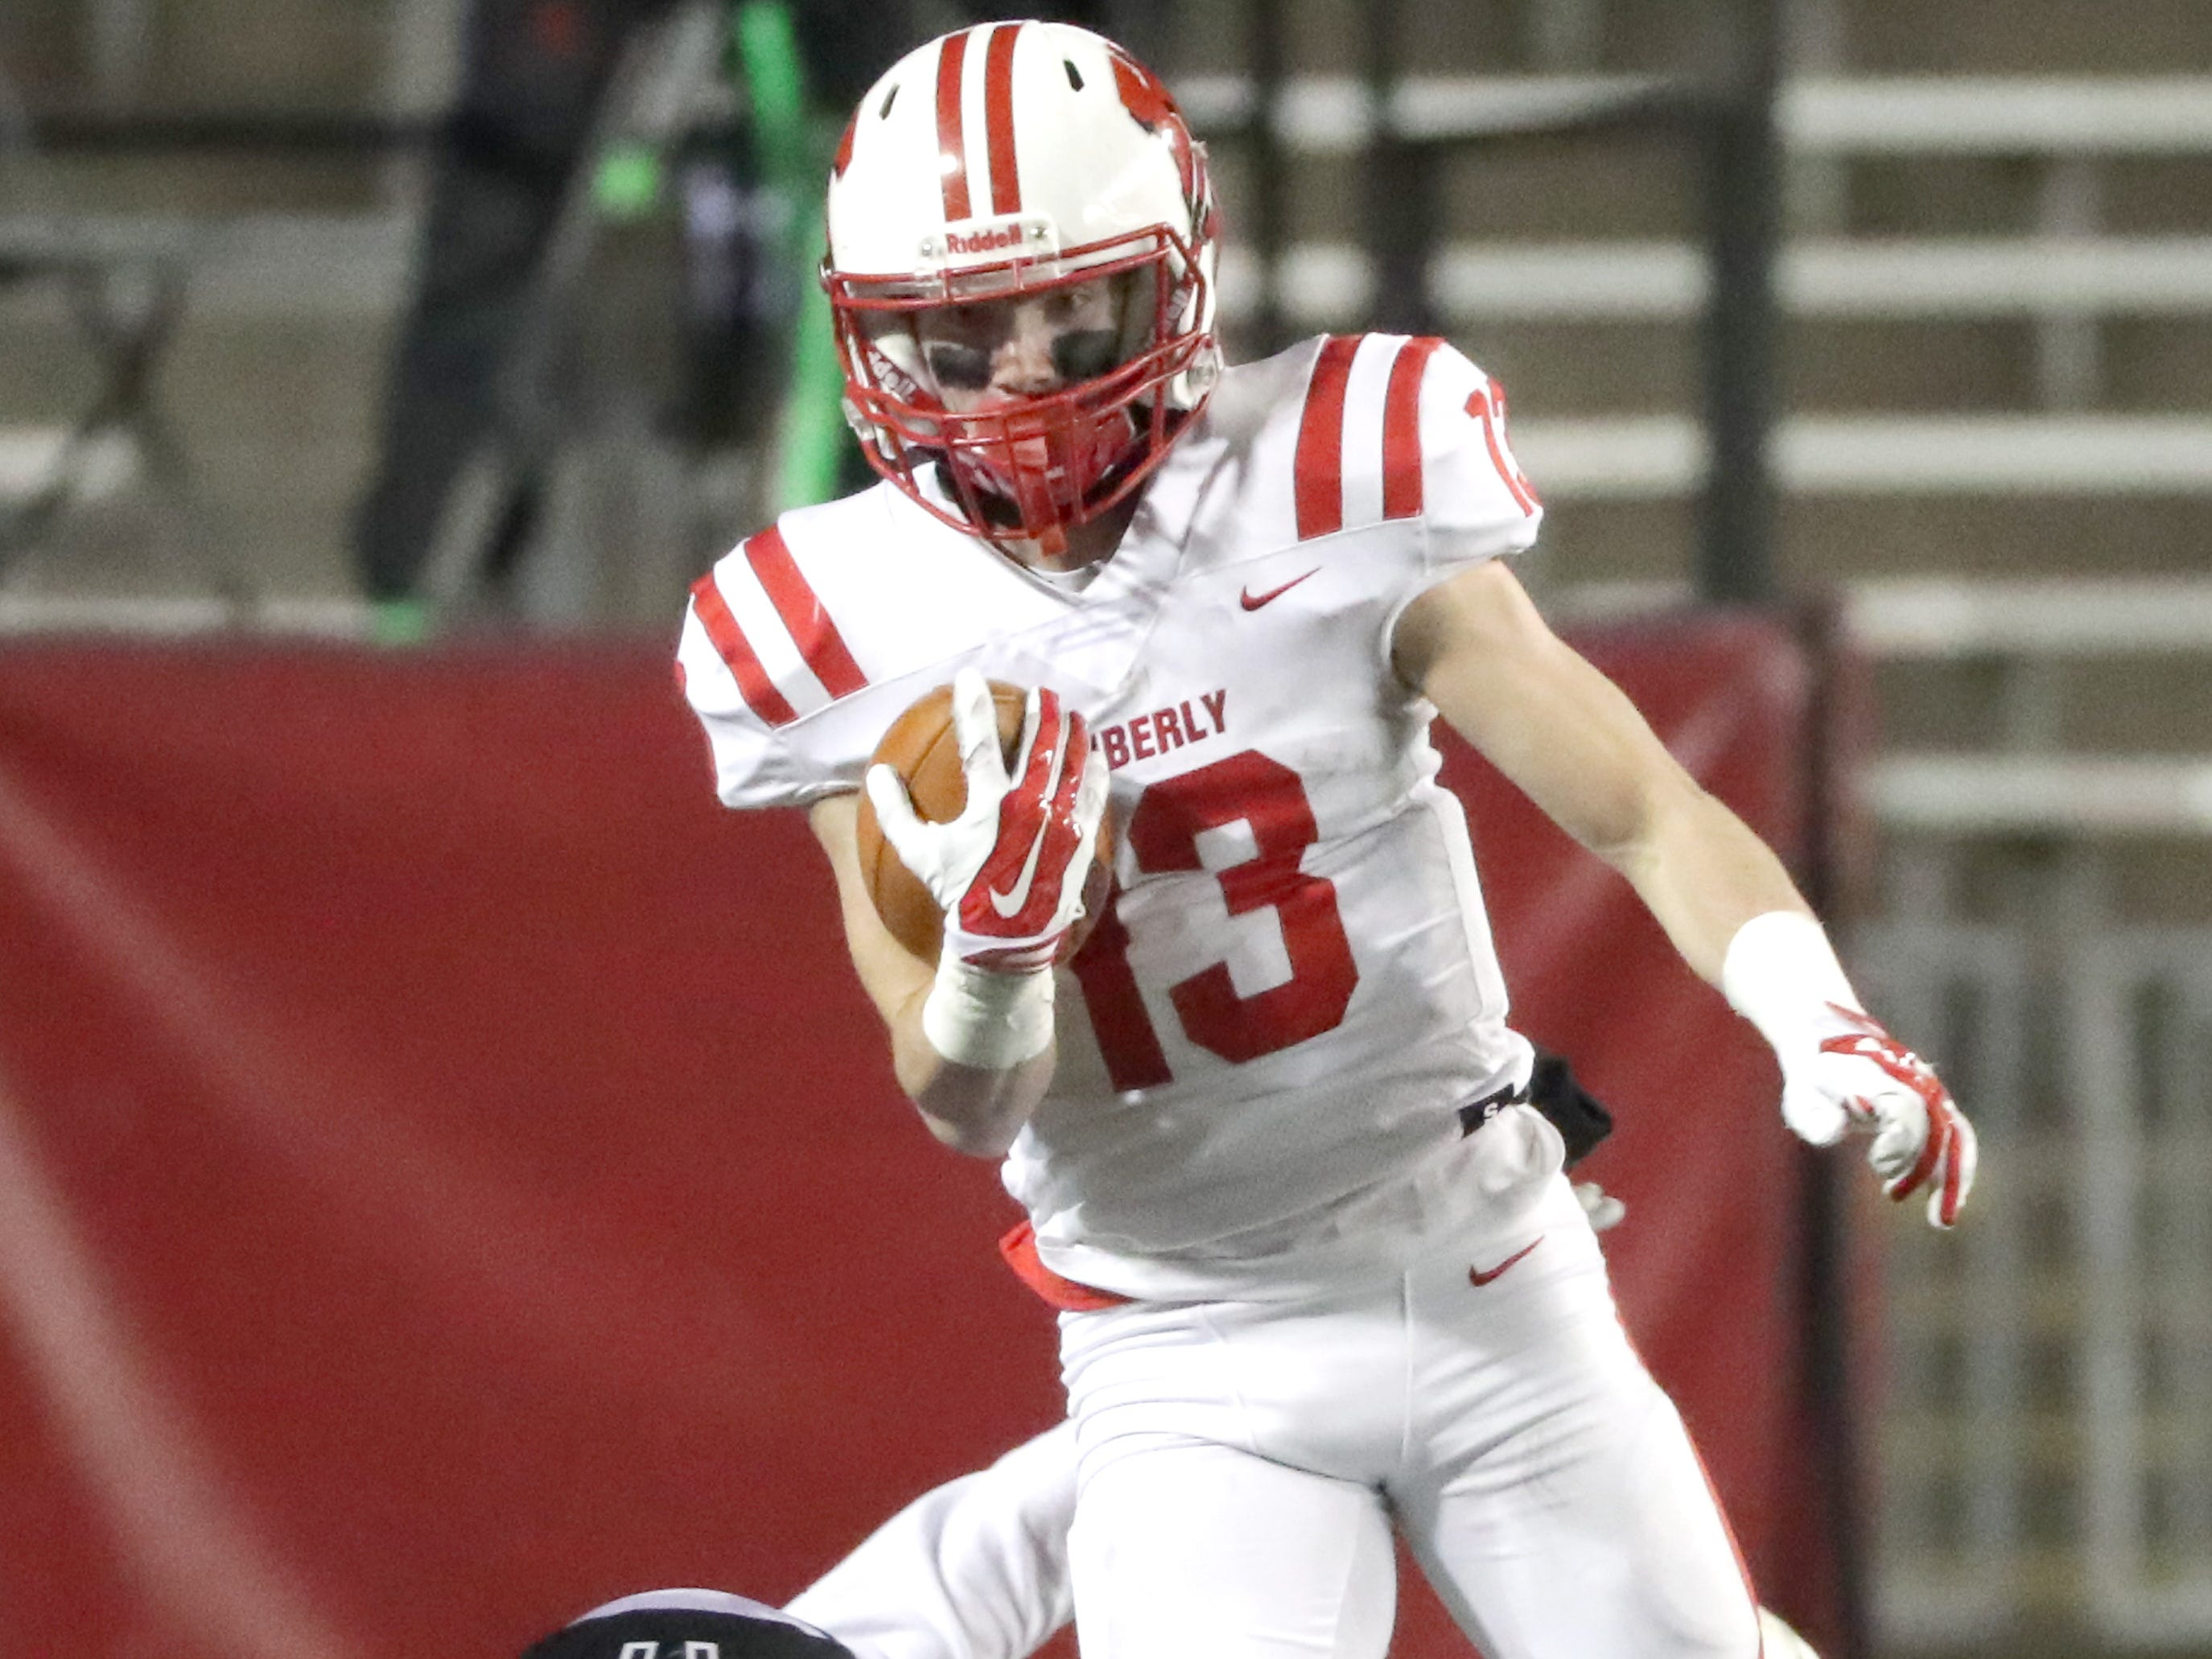 Kimberly High School's #13 Zach Lechnir against Muskego High School during the WIAA Division 1 state championship football game on Friday, November 16, 2018, at Camp Randall in Madison, Wis.